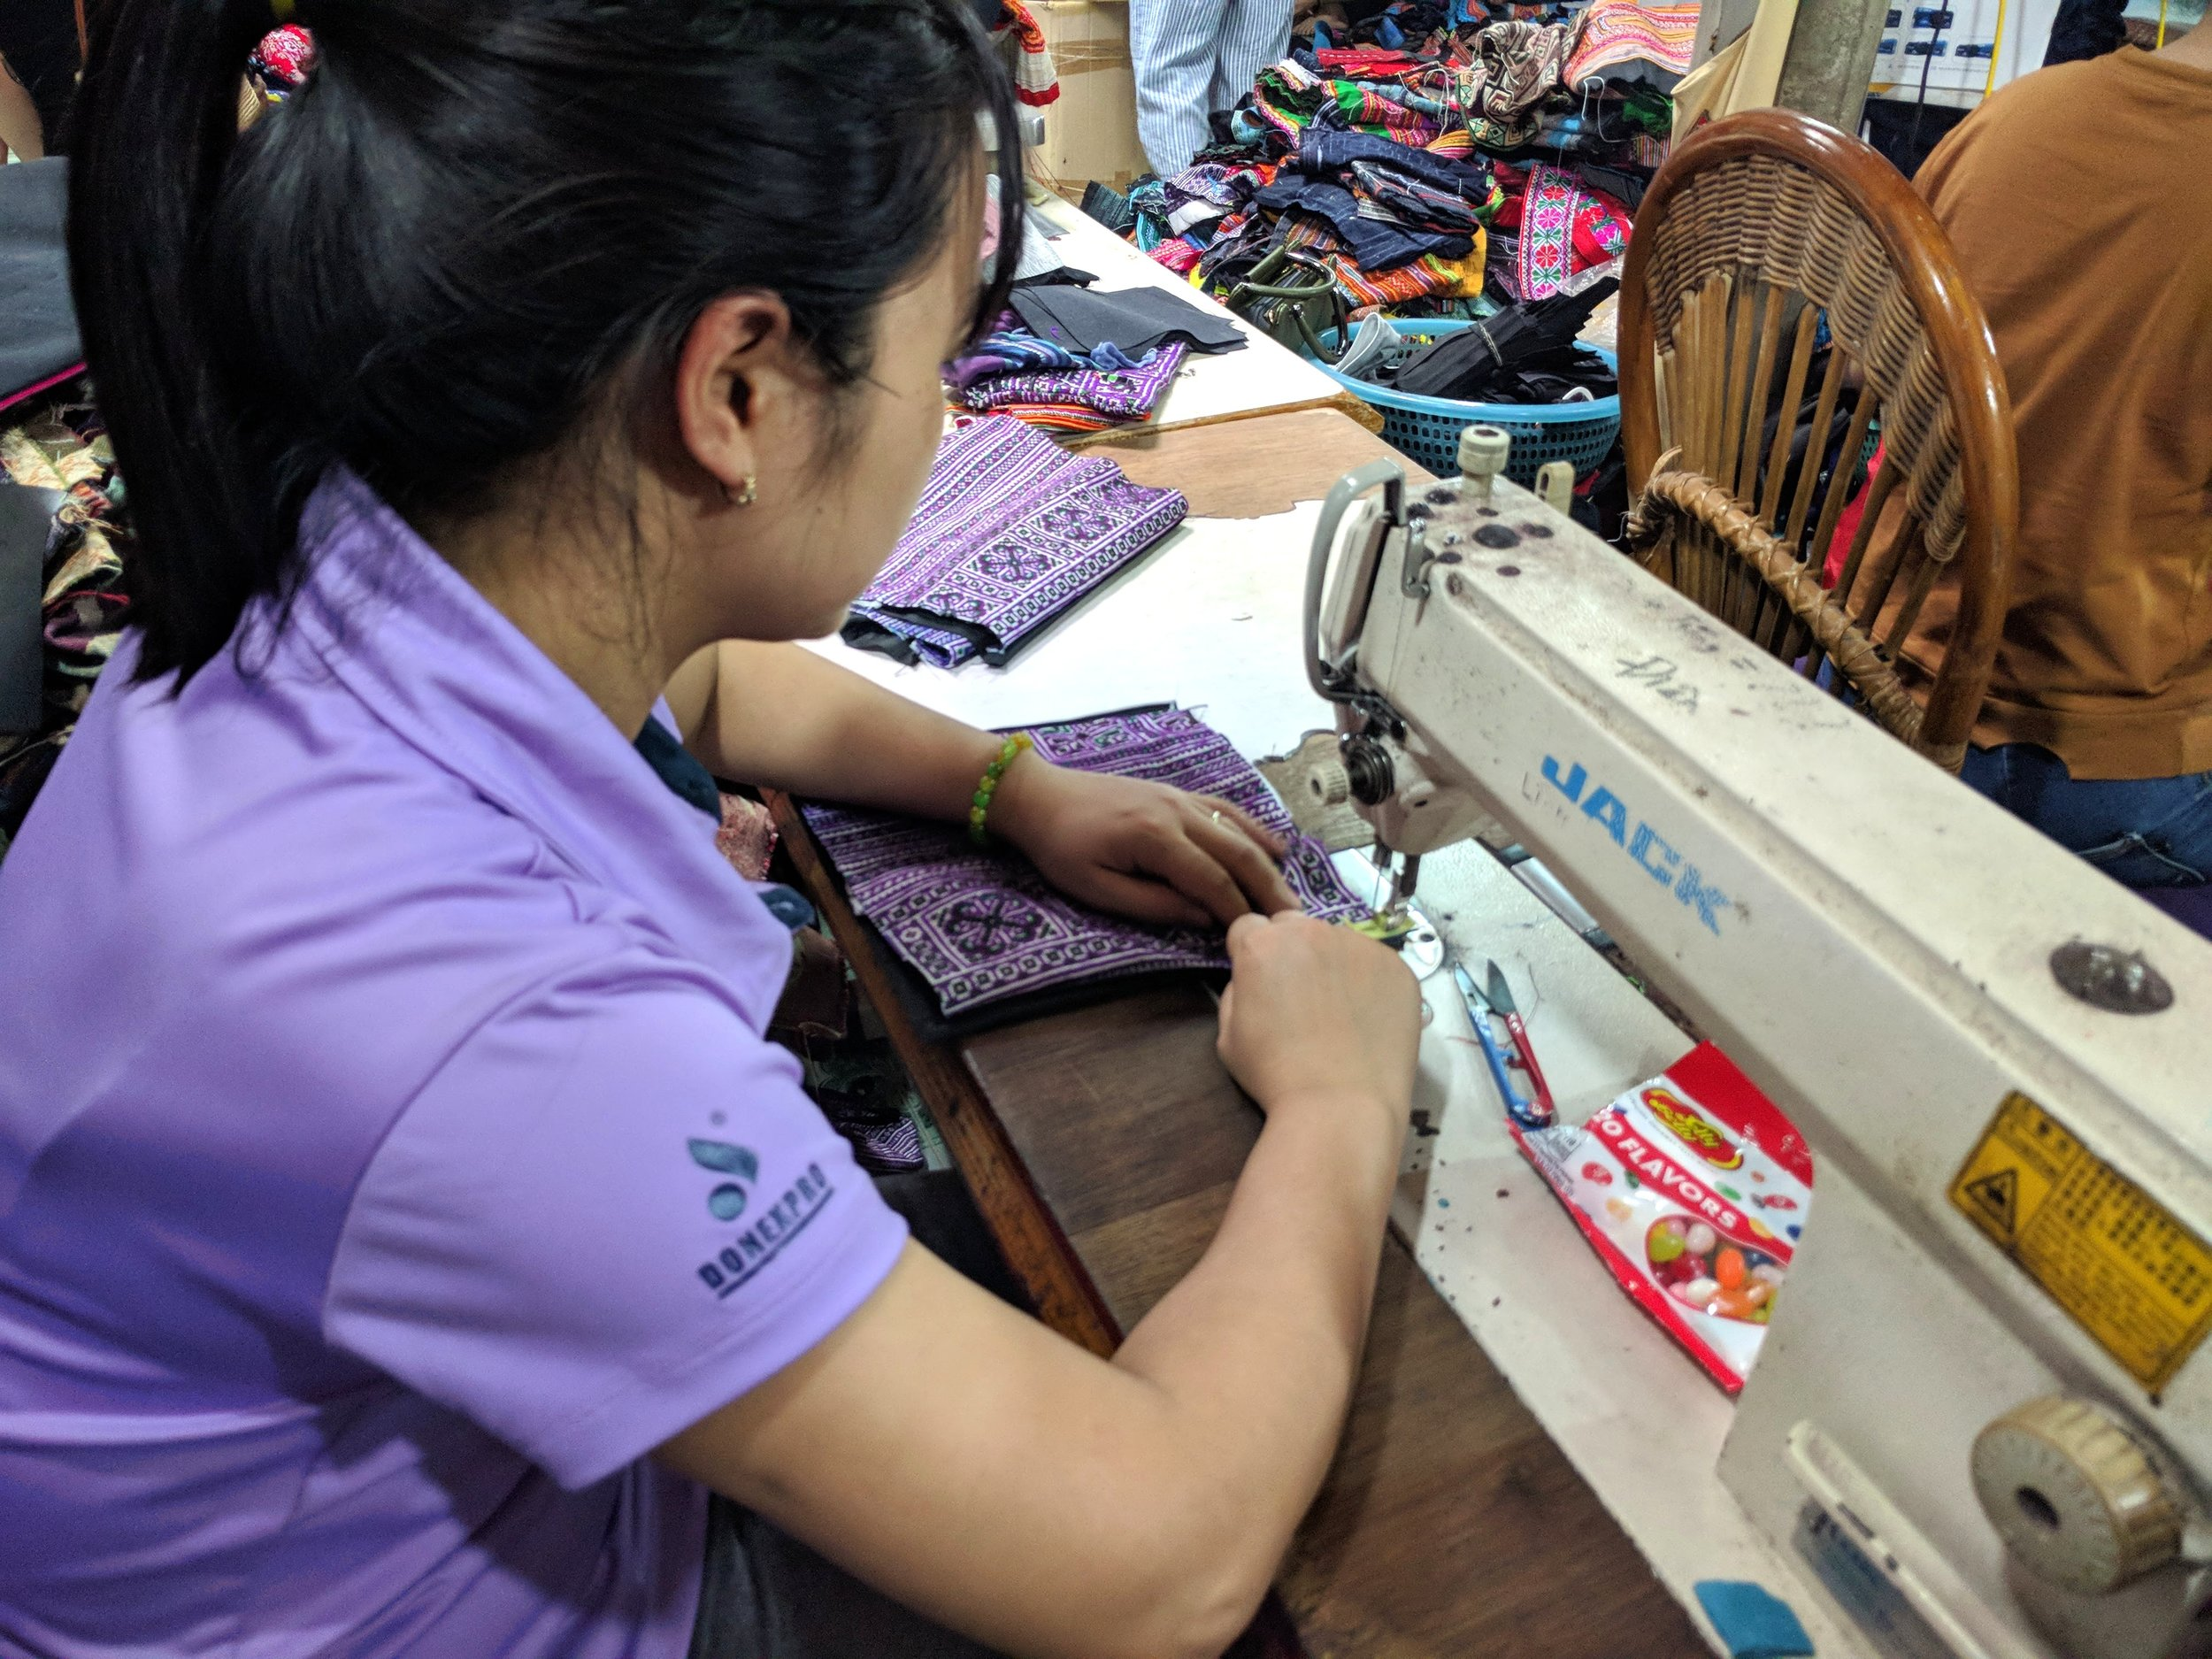 Hien's employee, Lien, sews a zippered pouch. This job has provided her with steady work for over 8 years.